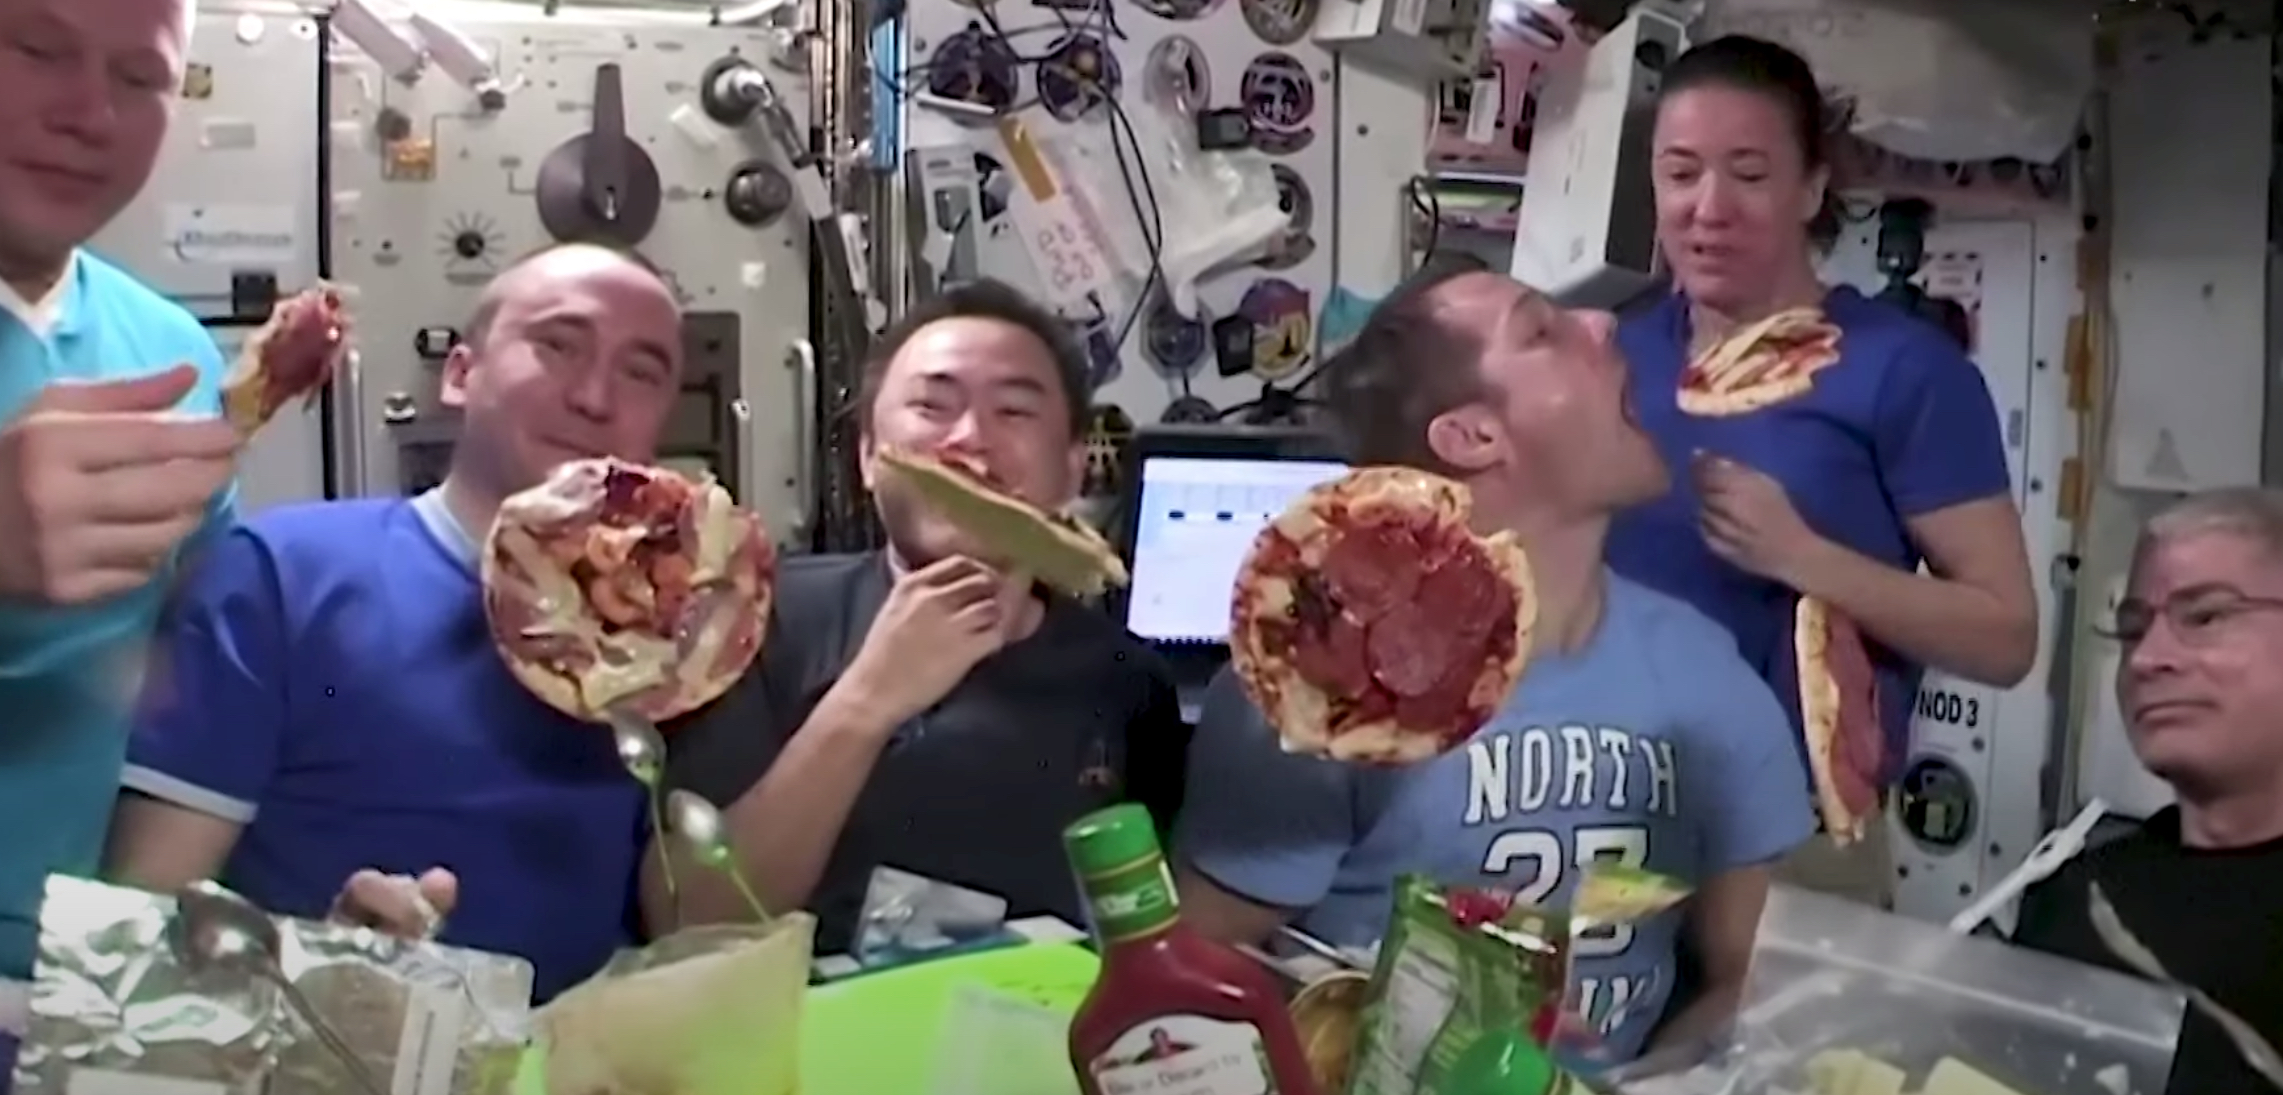 Look! It's pizza night aboard the International Space Station!